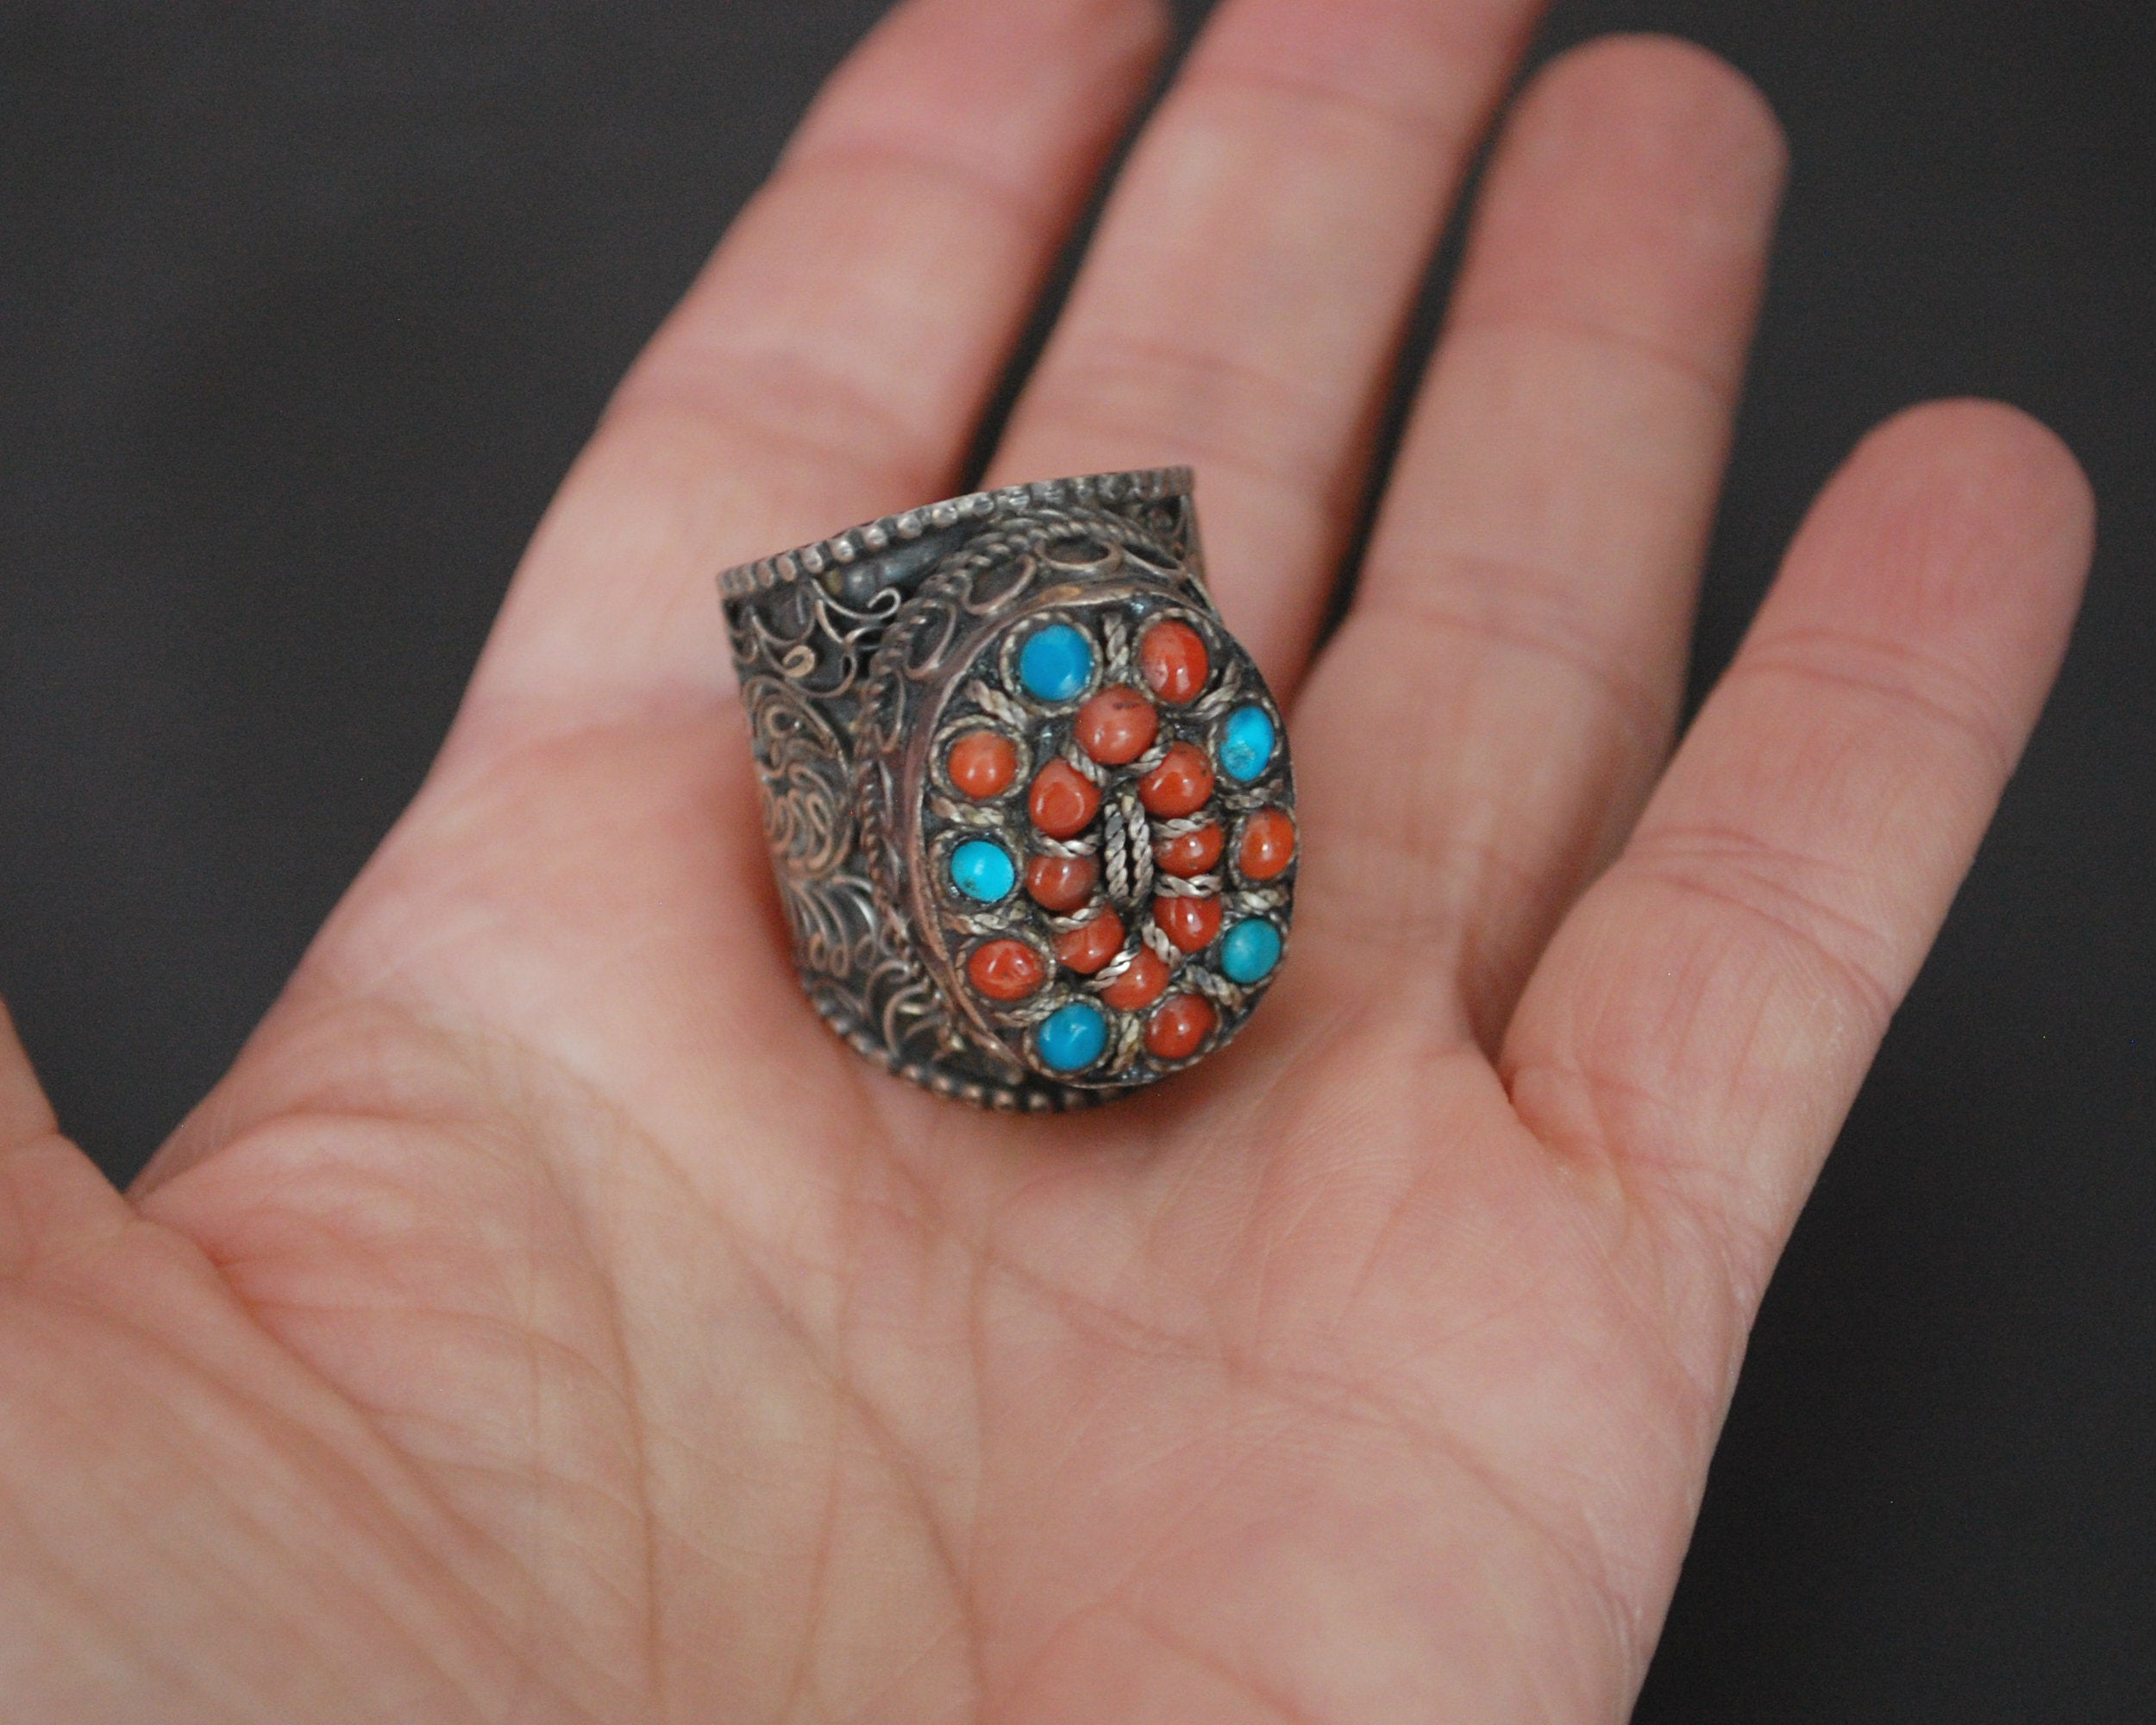 Nepali Turquoise Coral Ring - Size 8.75